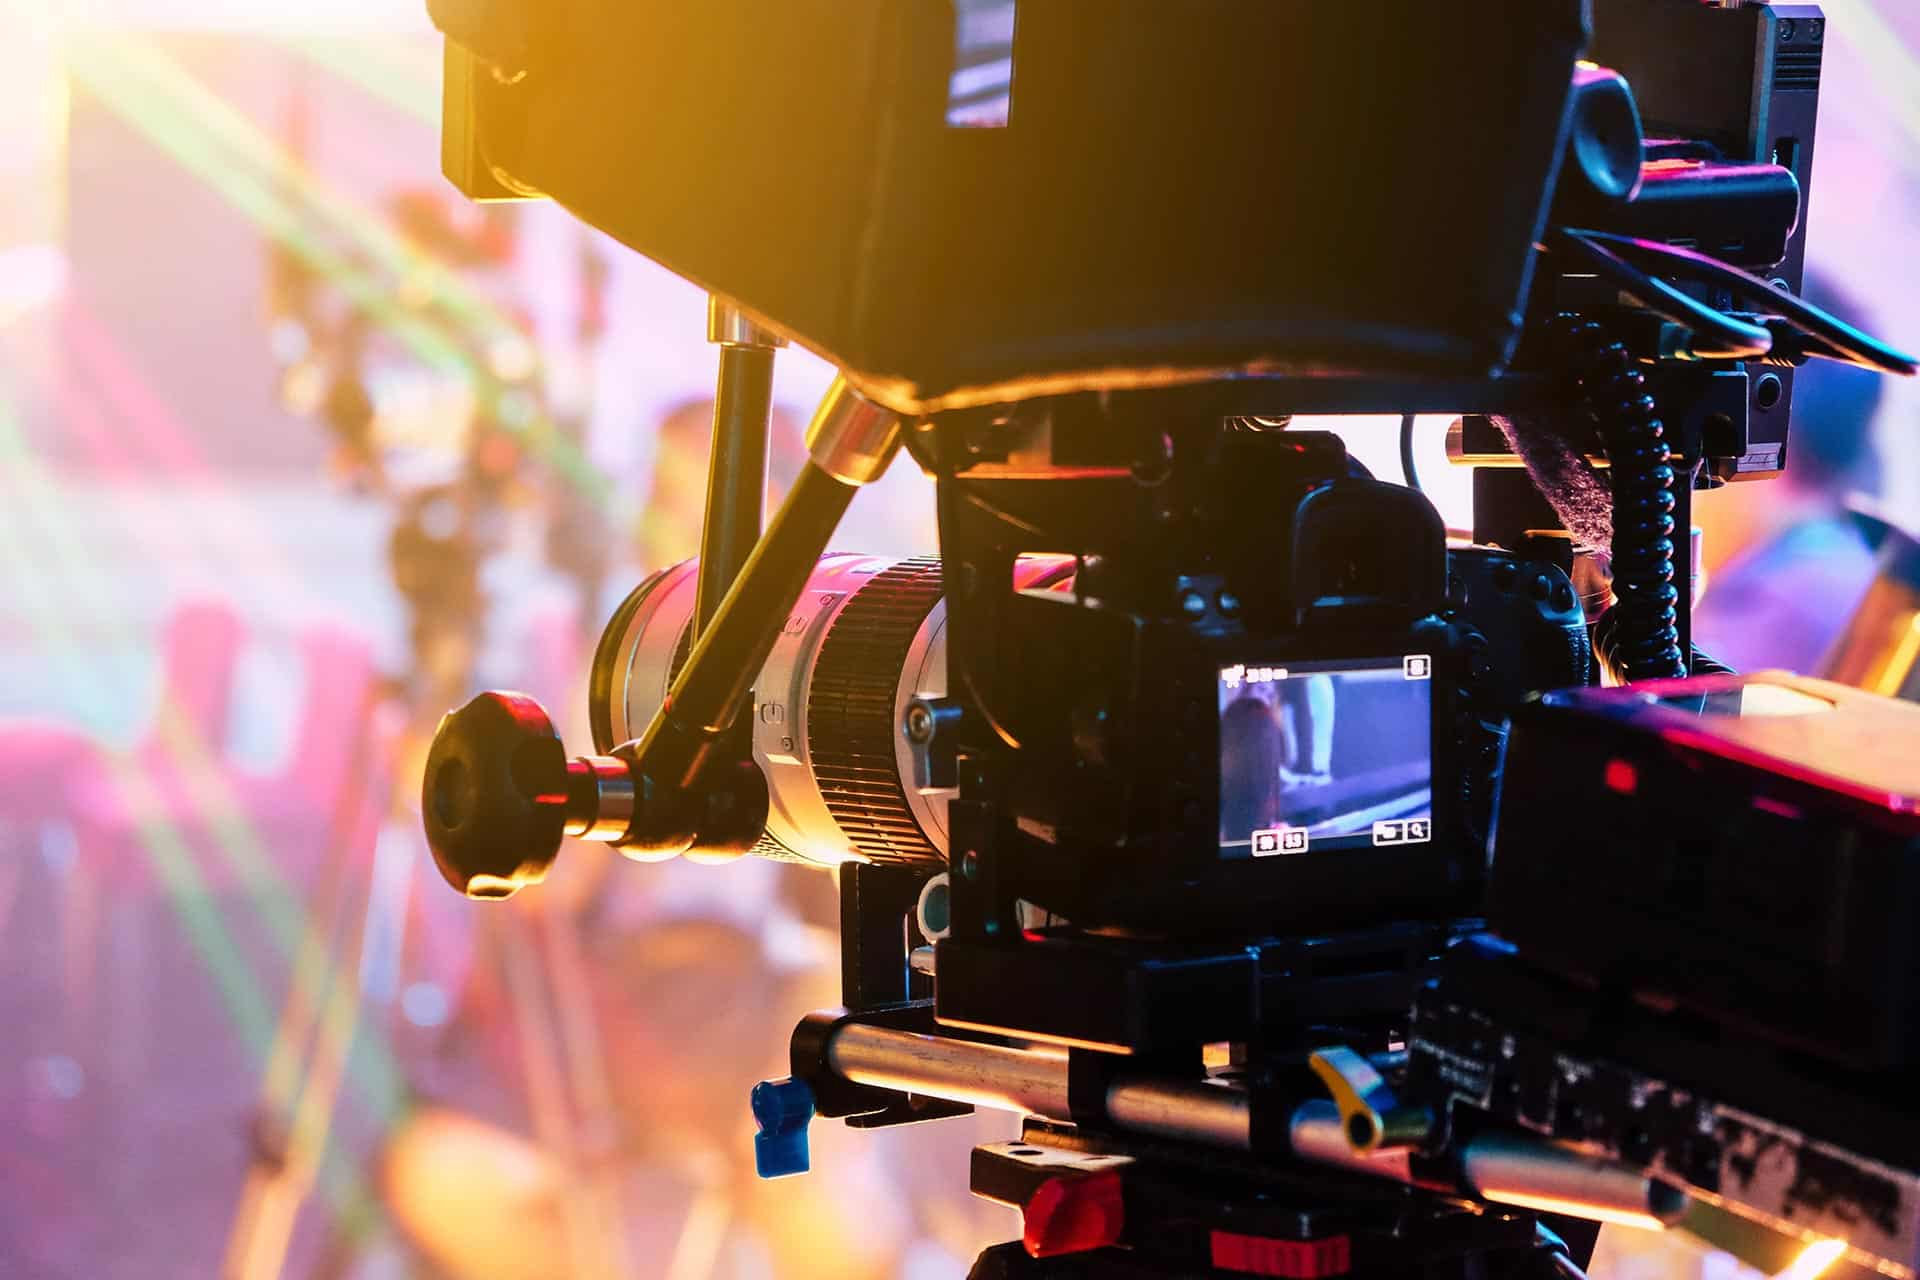 The Main Purpose of Commercial Video (Drive Sales for Your Business)